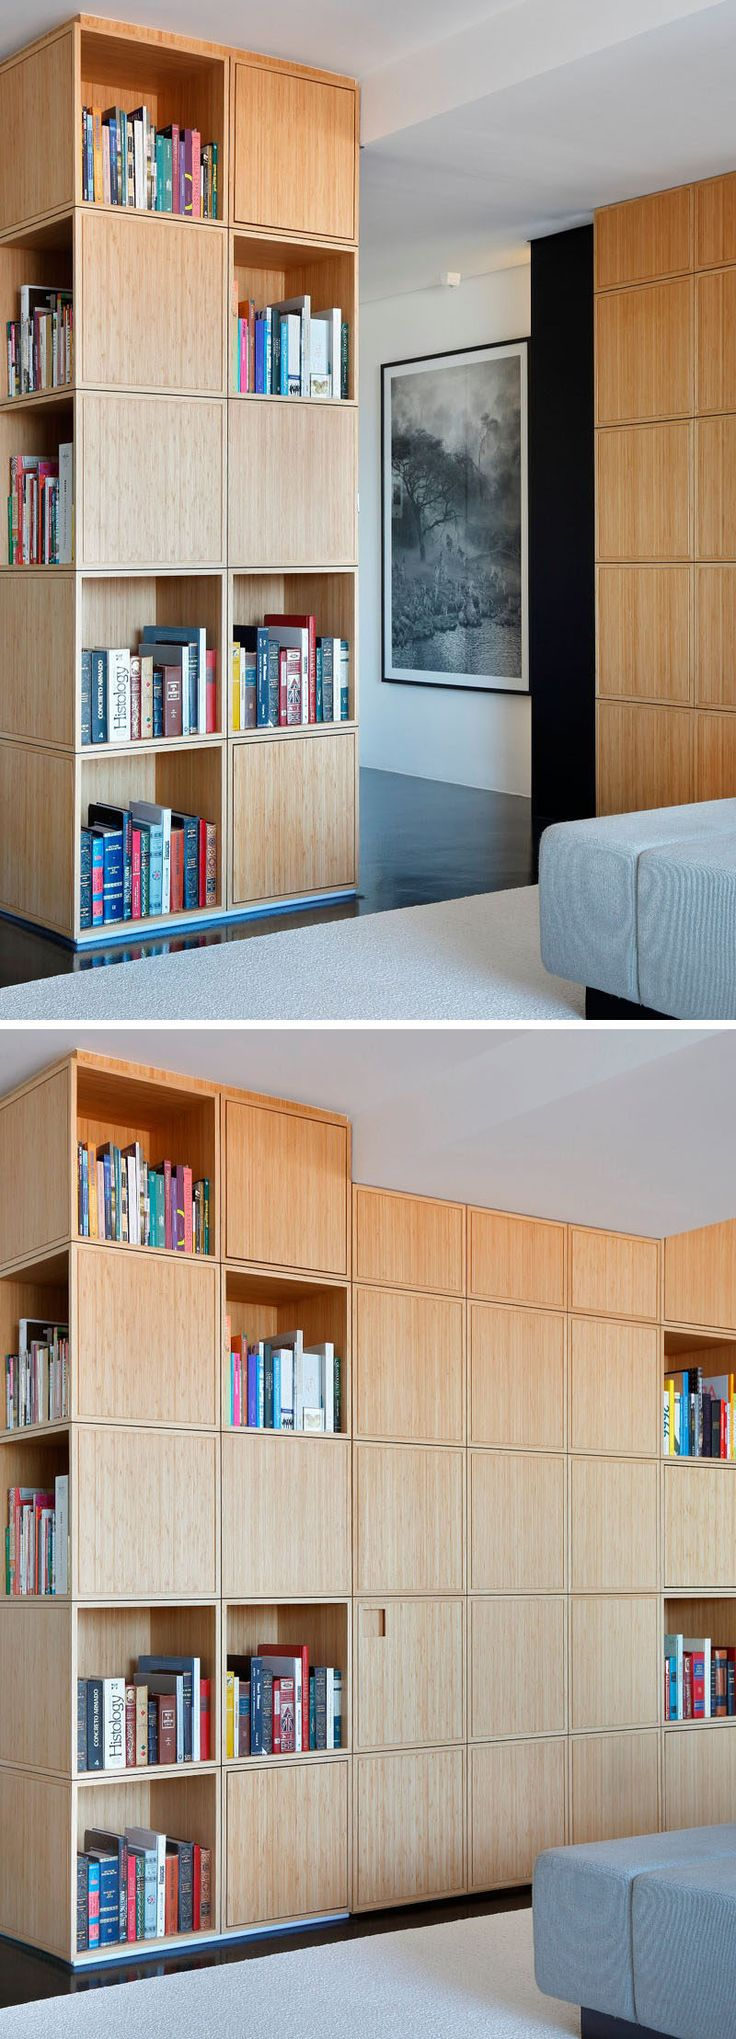 The entry hall to this modern apartment is concealed behind a u-shaped wood bookcase and is hidden from view when the door closes and blends into the rest of the bookcase.